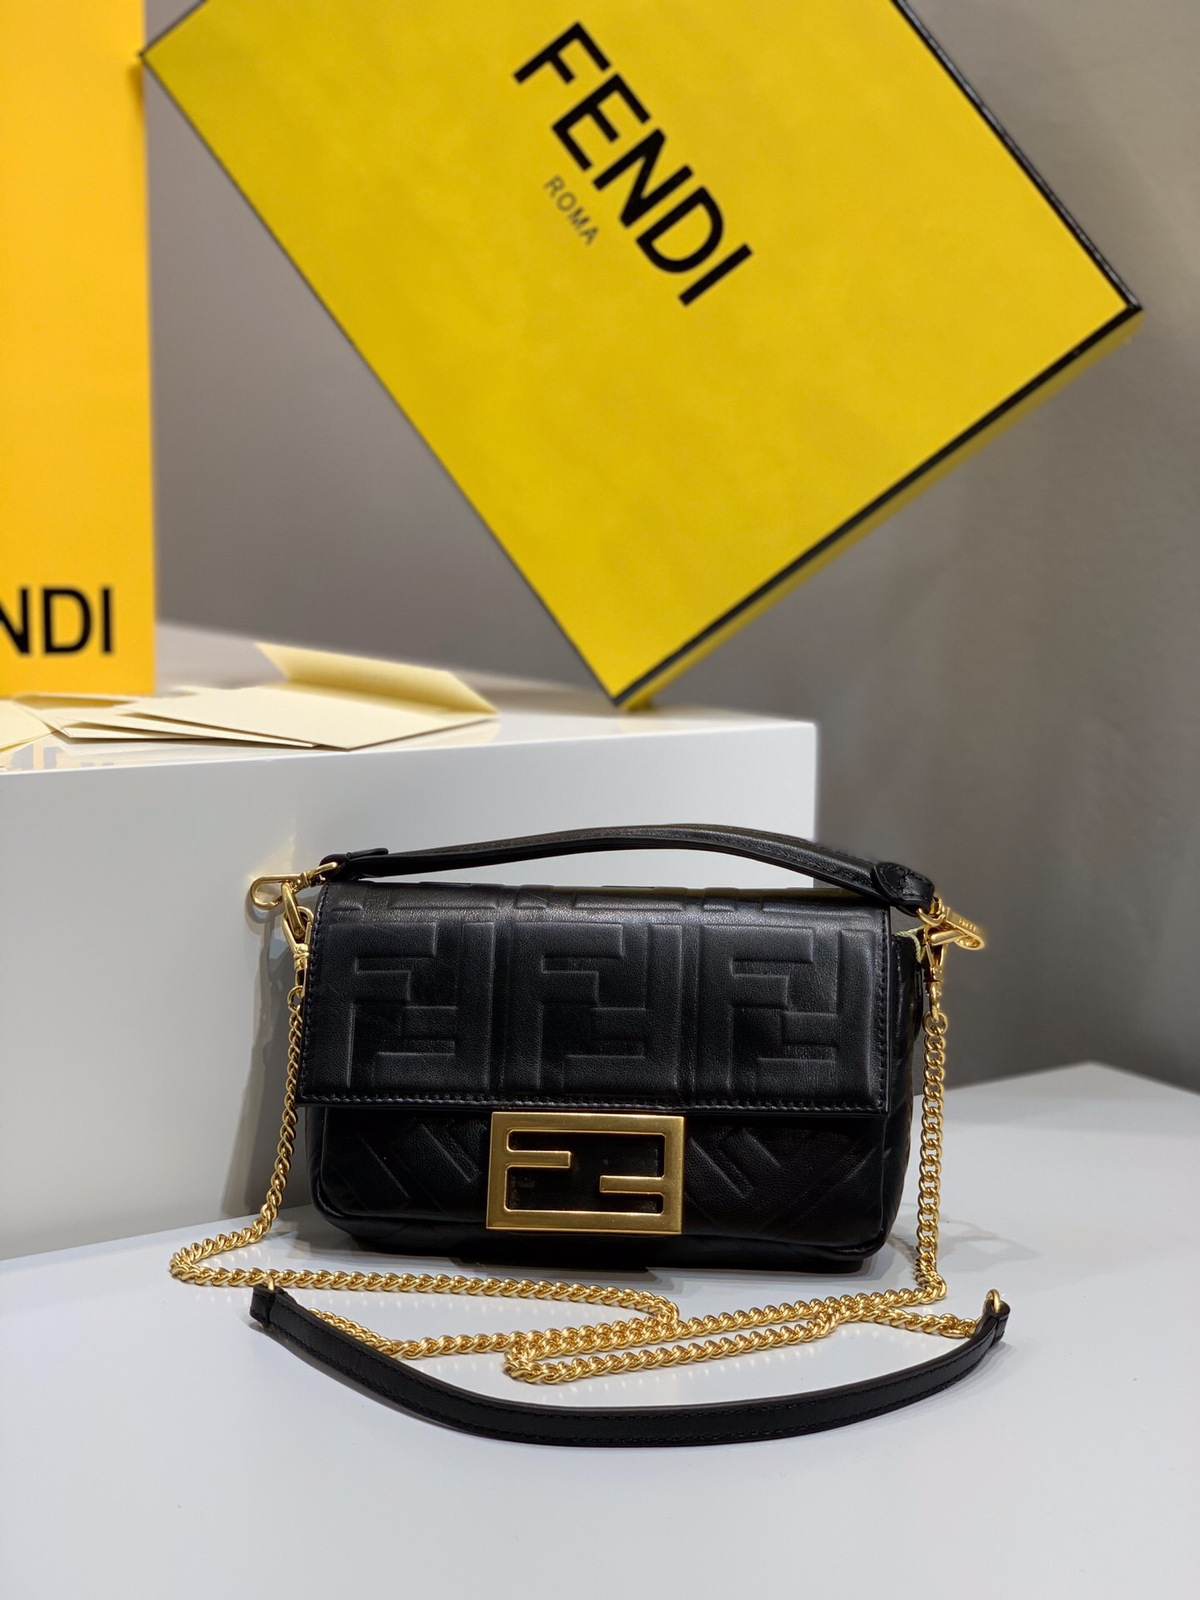 2019 Fendi bag BAGUETTE black